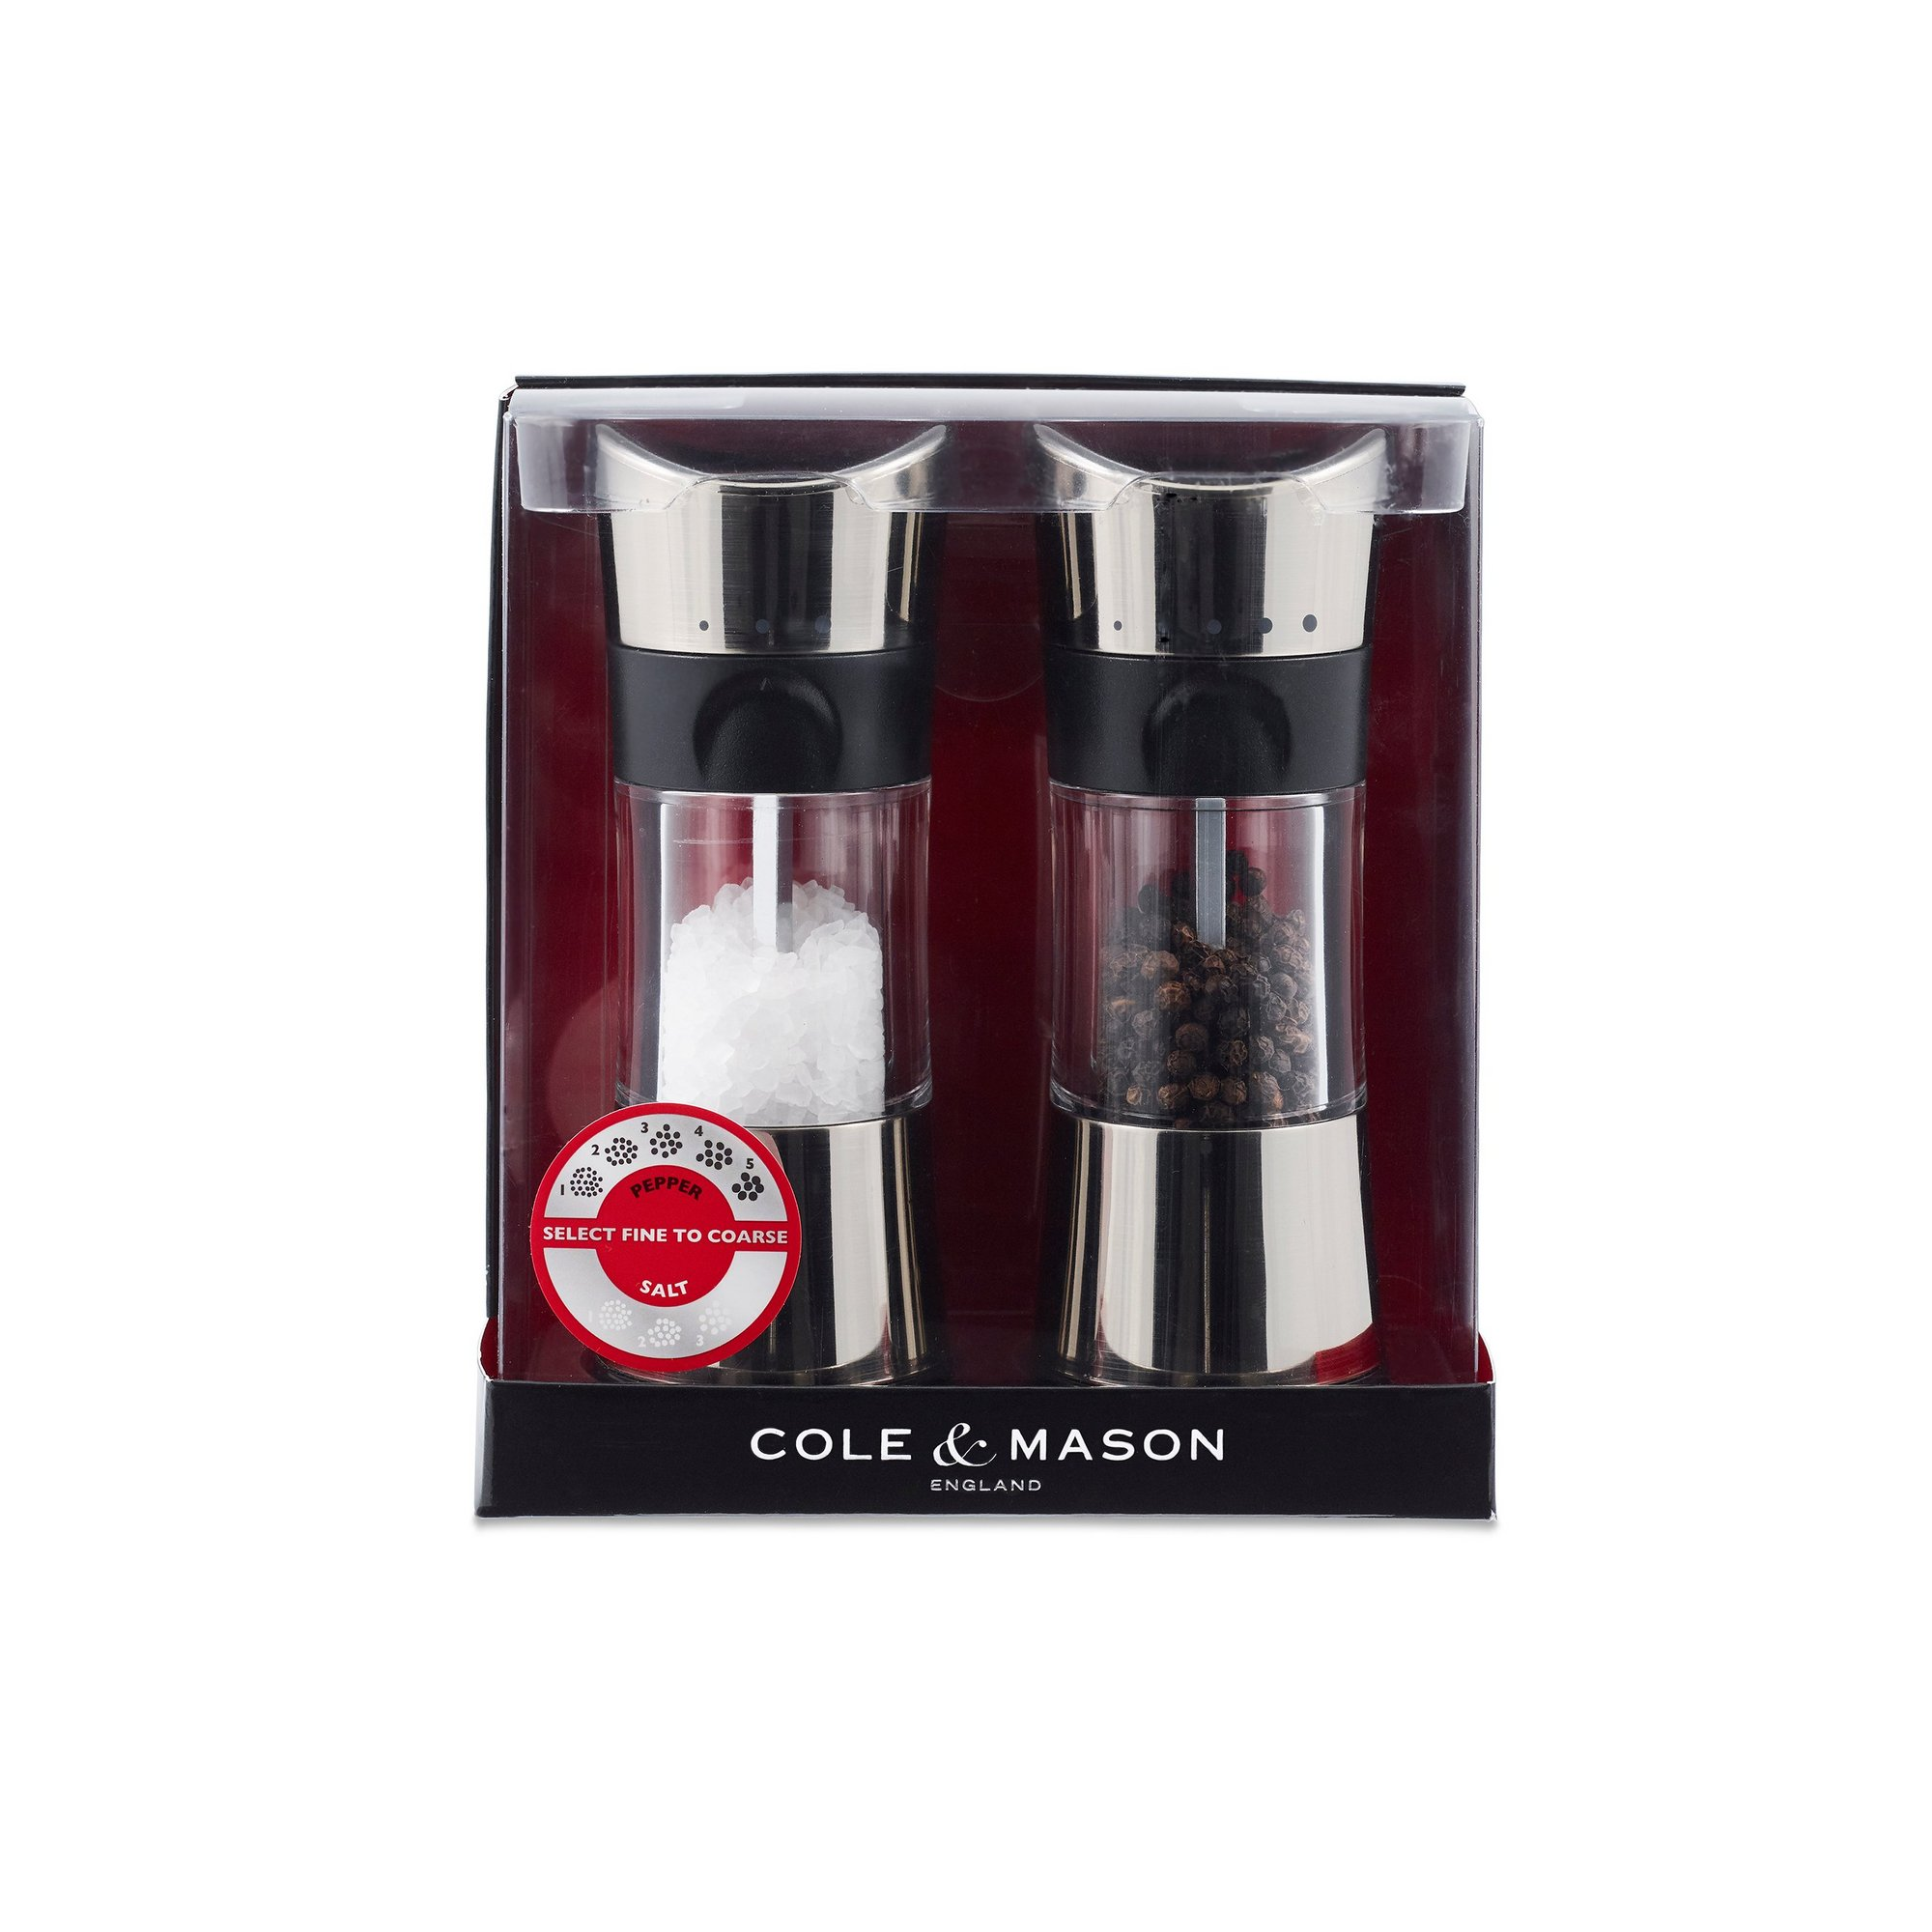 Image of Cole and Mason Horsham Salt and Pepper Mill Gift Set